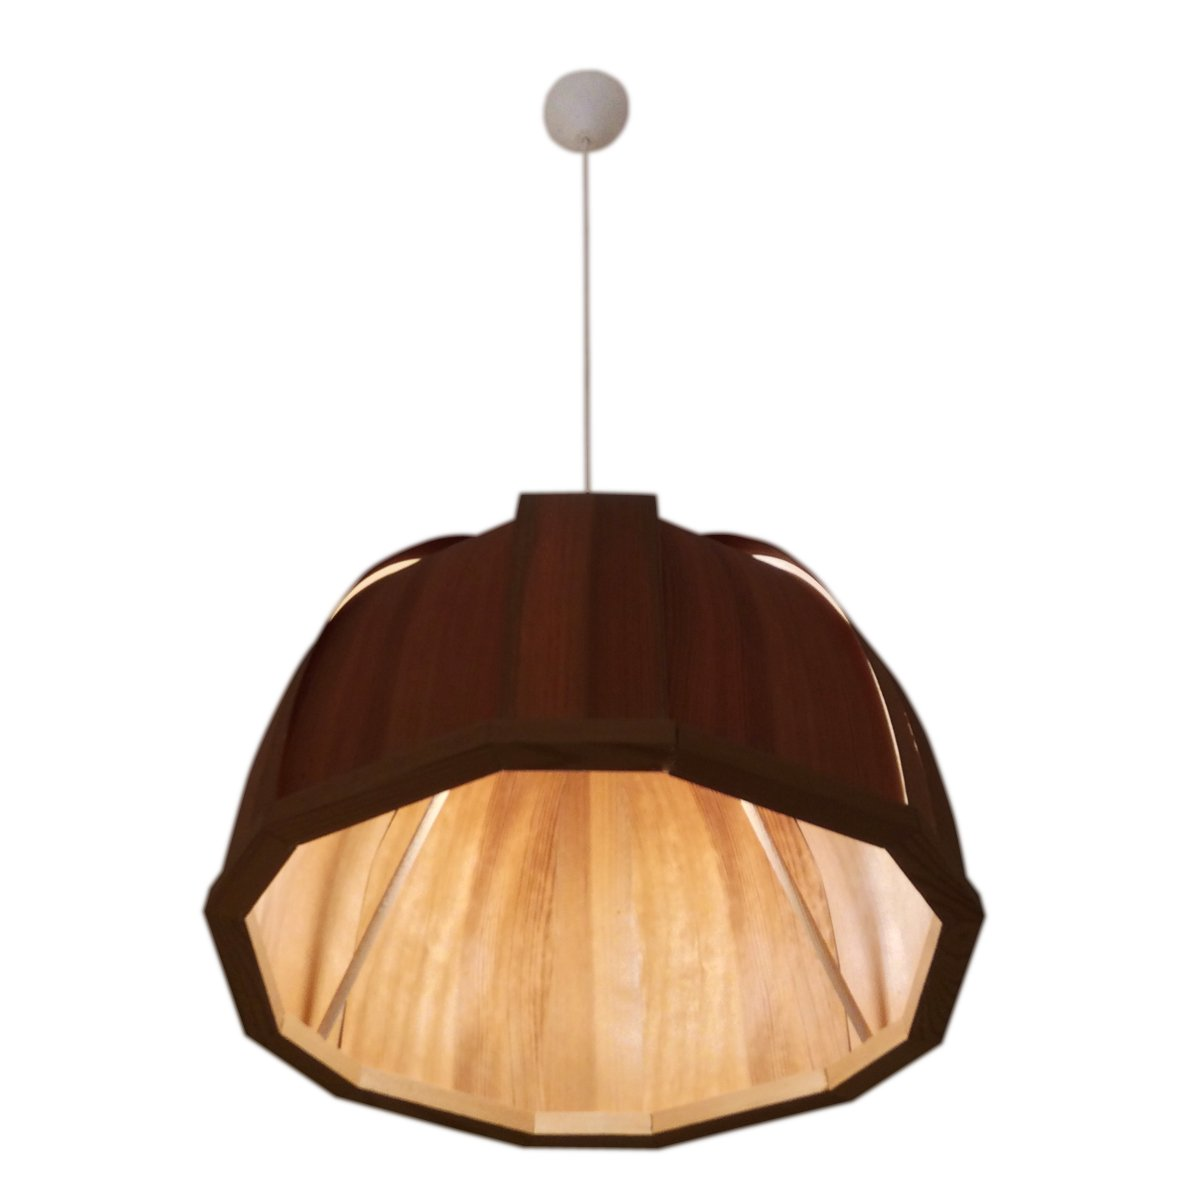 Vintage swedish wooden ceiling lamp for sale at pamono for Ceiling lamp wood